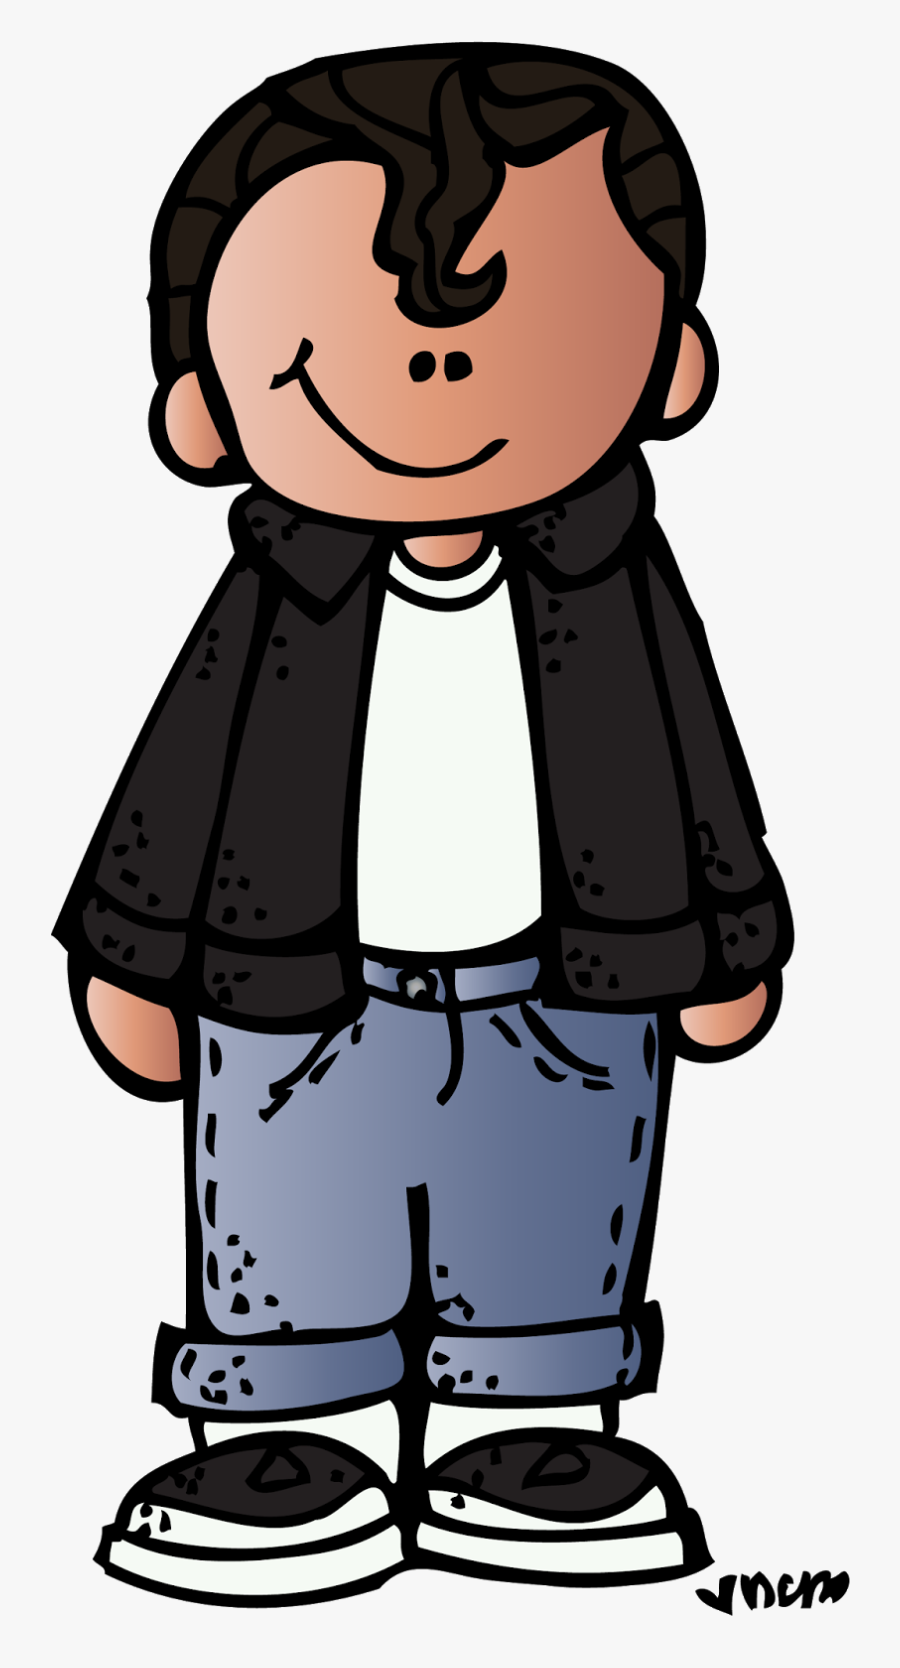 50th Day Of School Clipart.